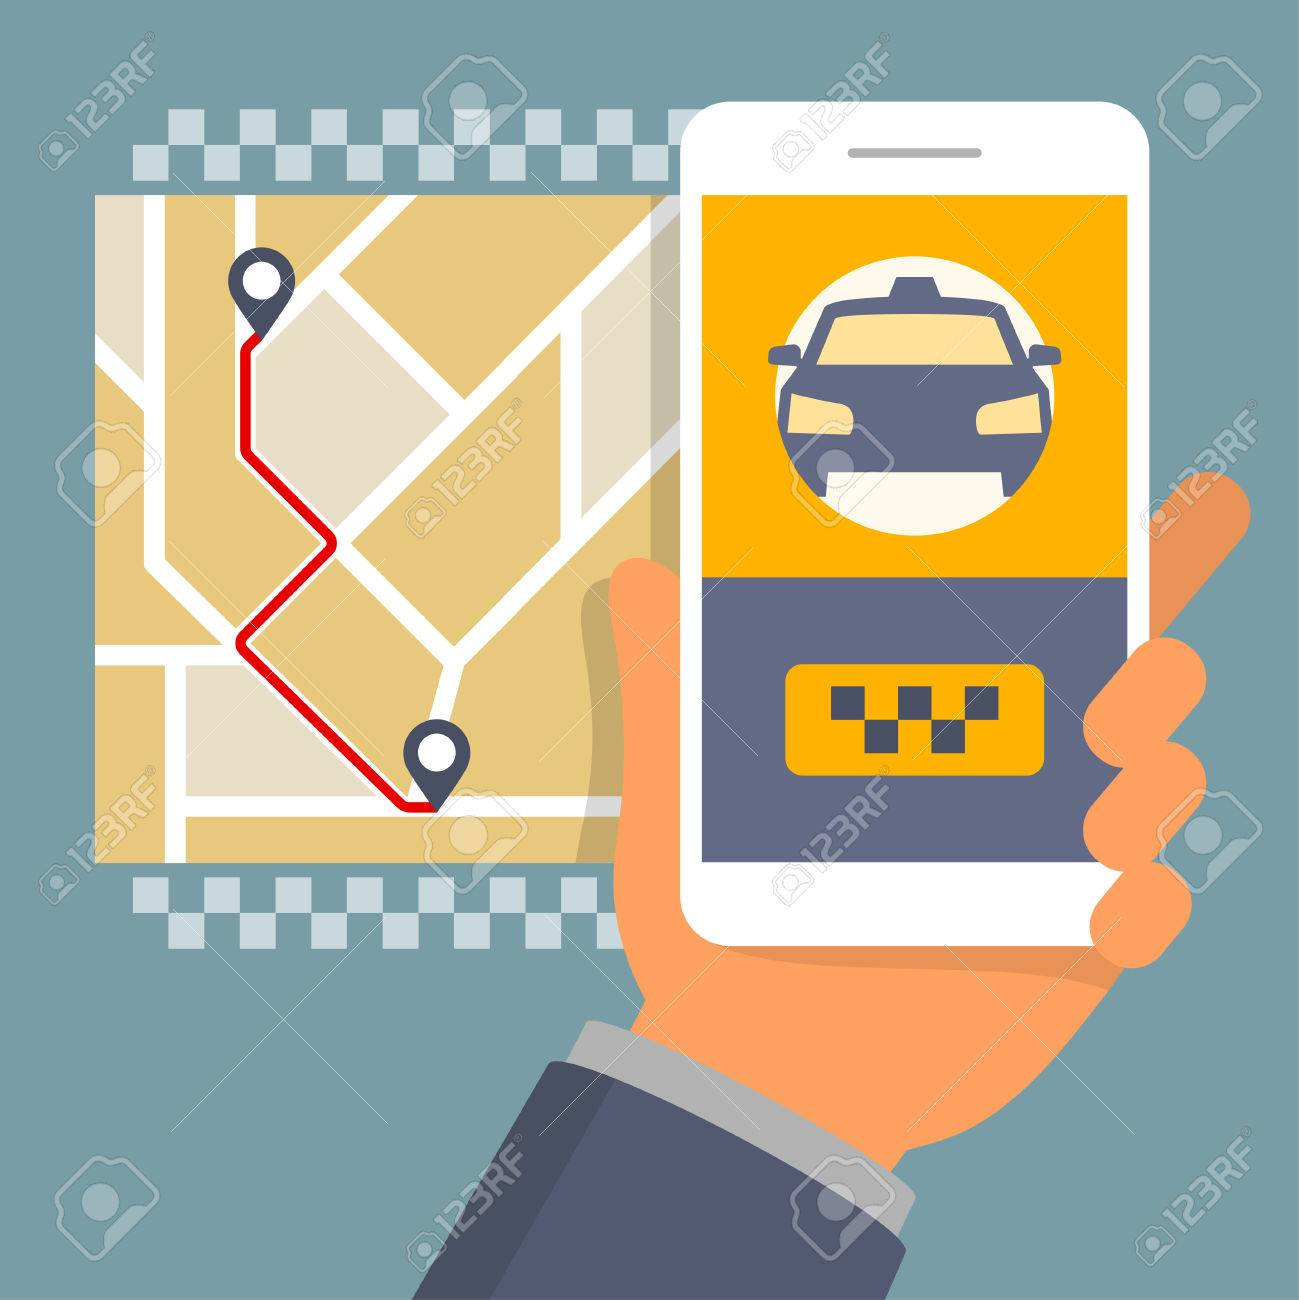 Hand holding phone with taxi hire service app running, flat design illustration - 49649118